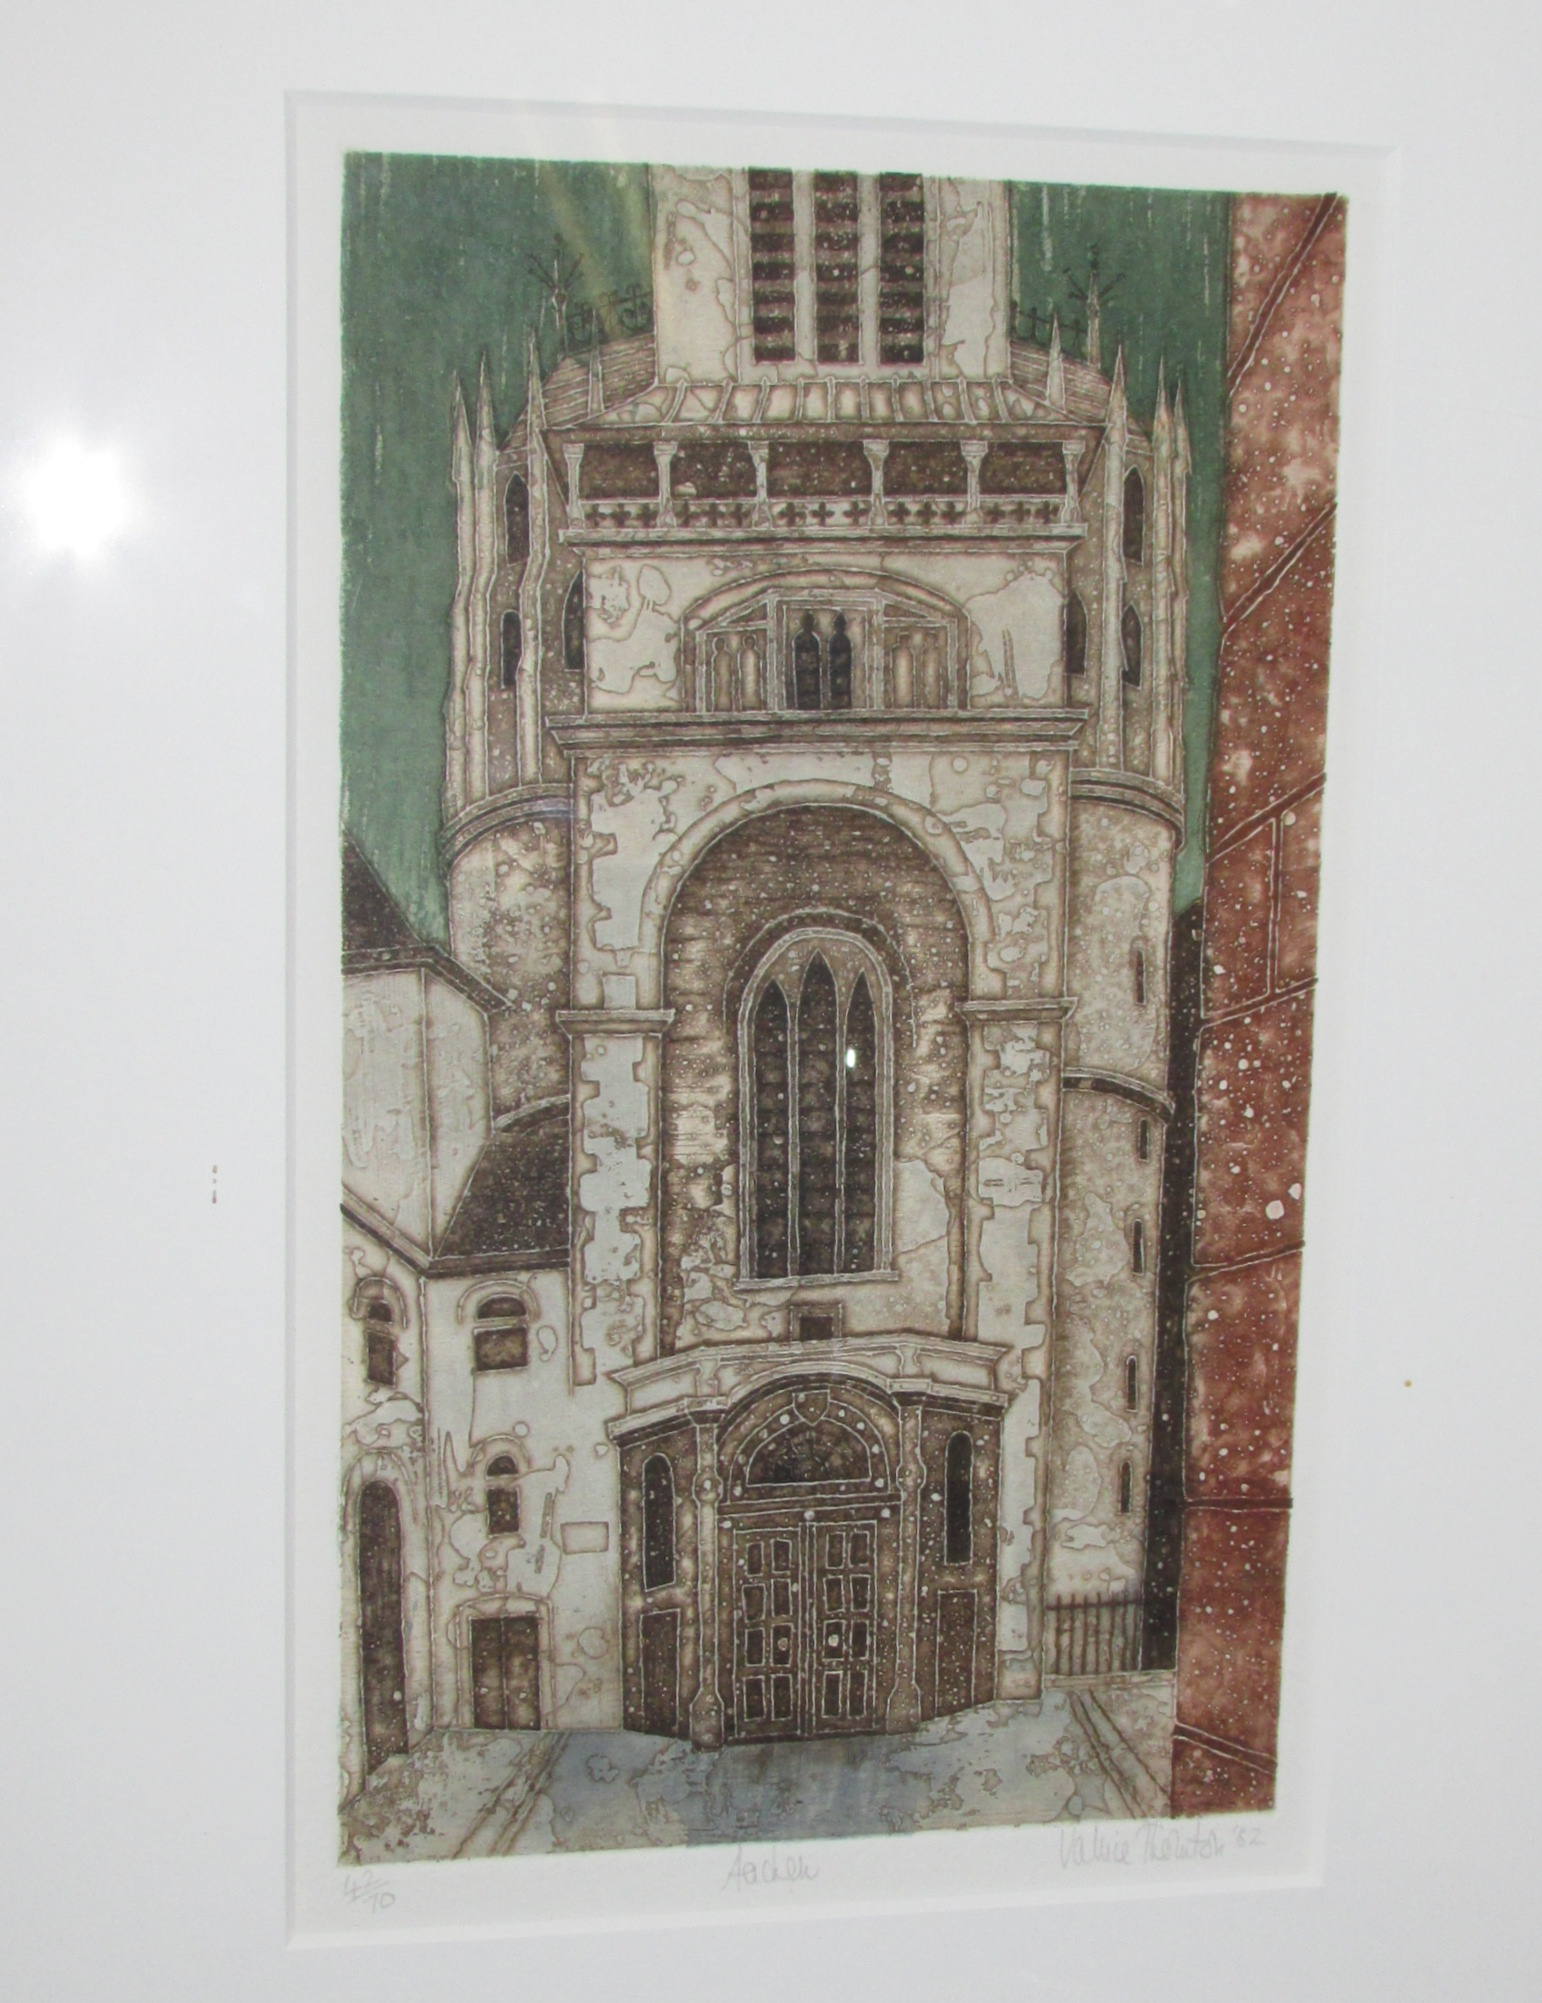 Lot 15 - Valerie Thornton (1931-1991) - 'Aachen', aquatint etching signed edition of 70, signed and